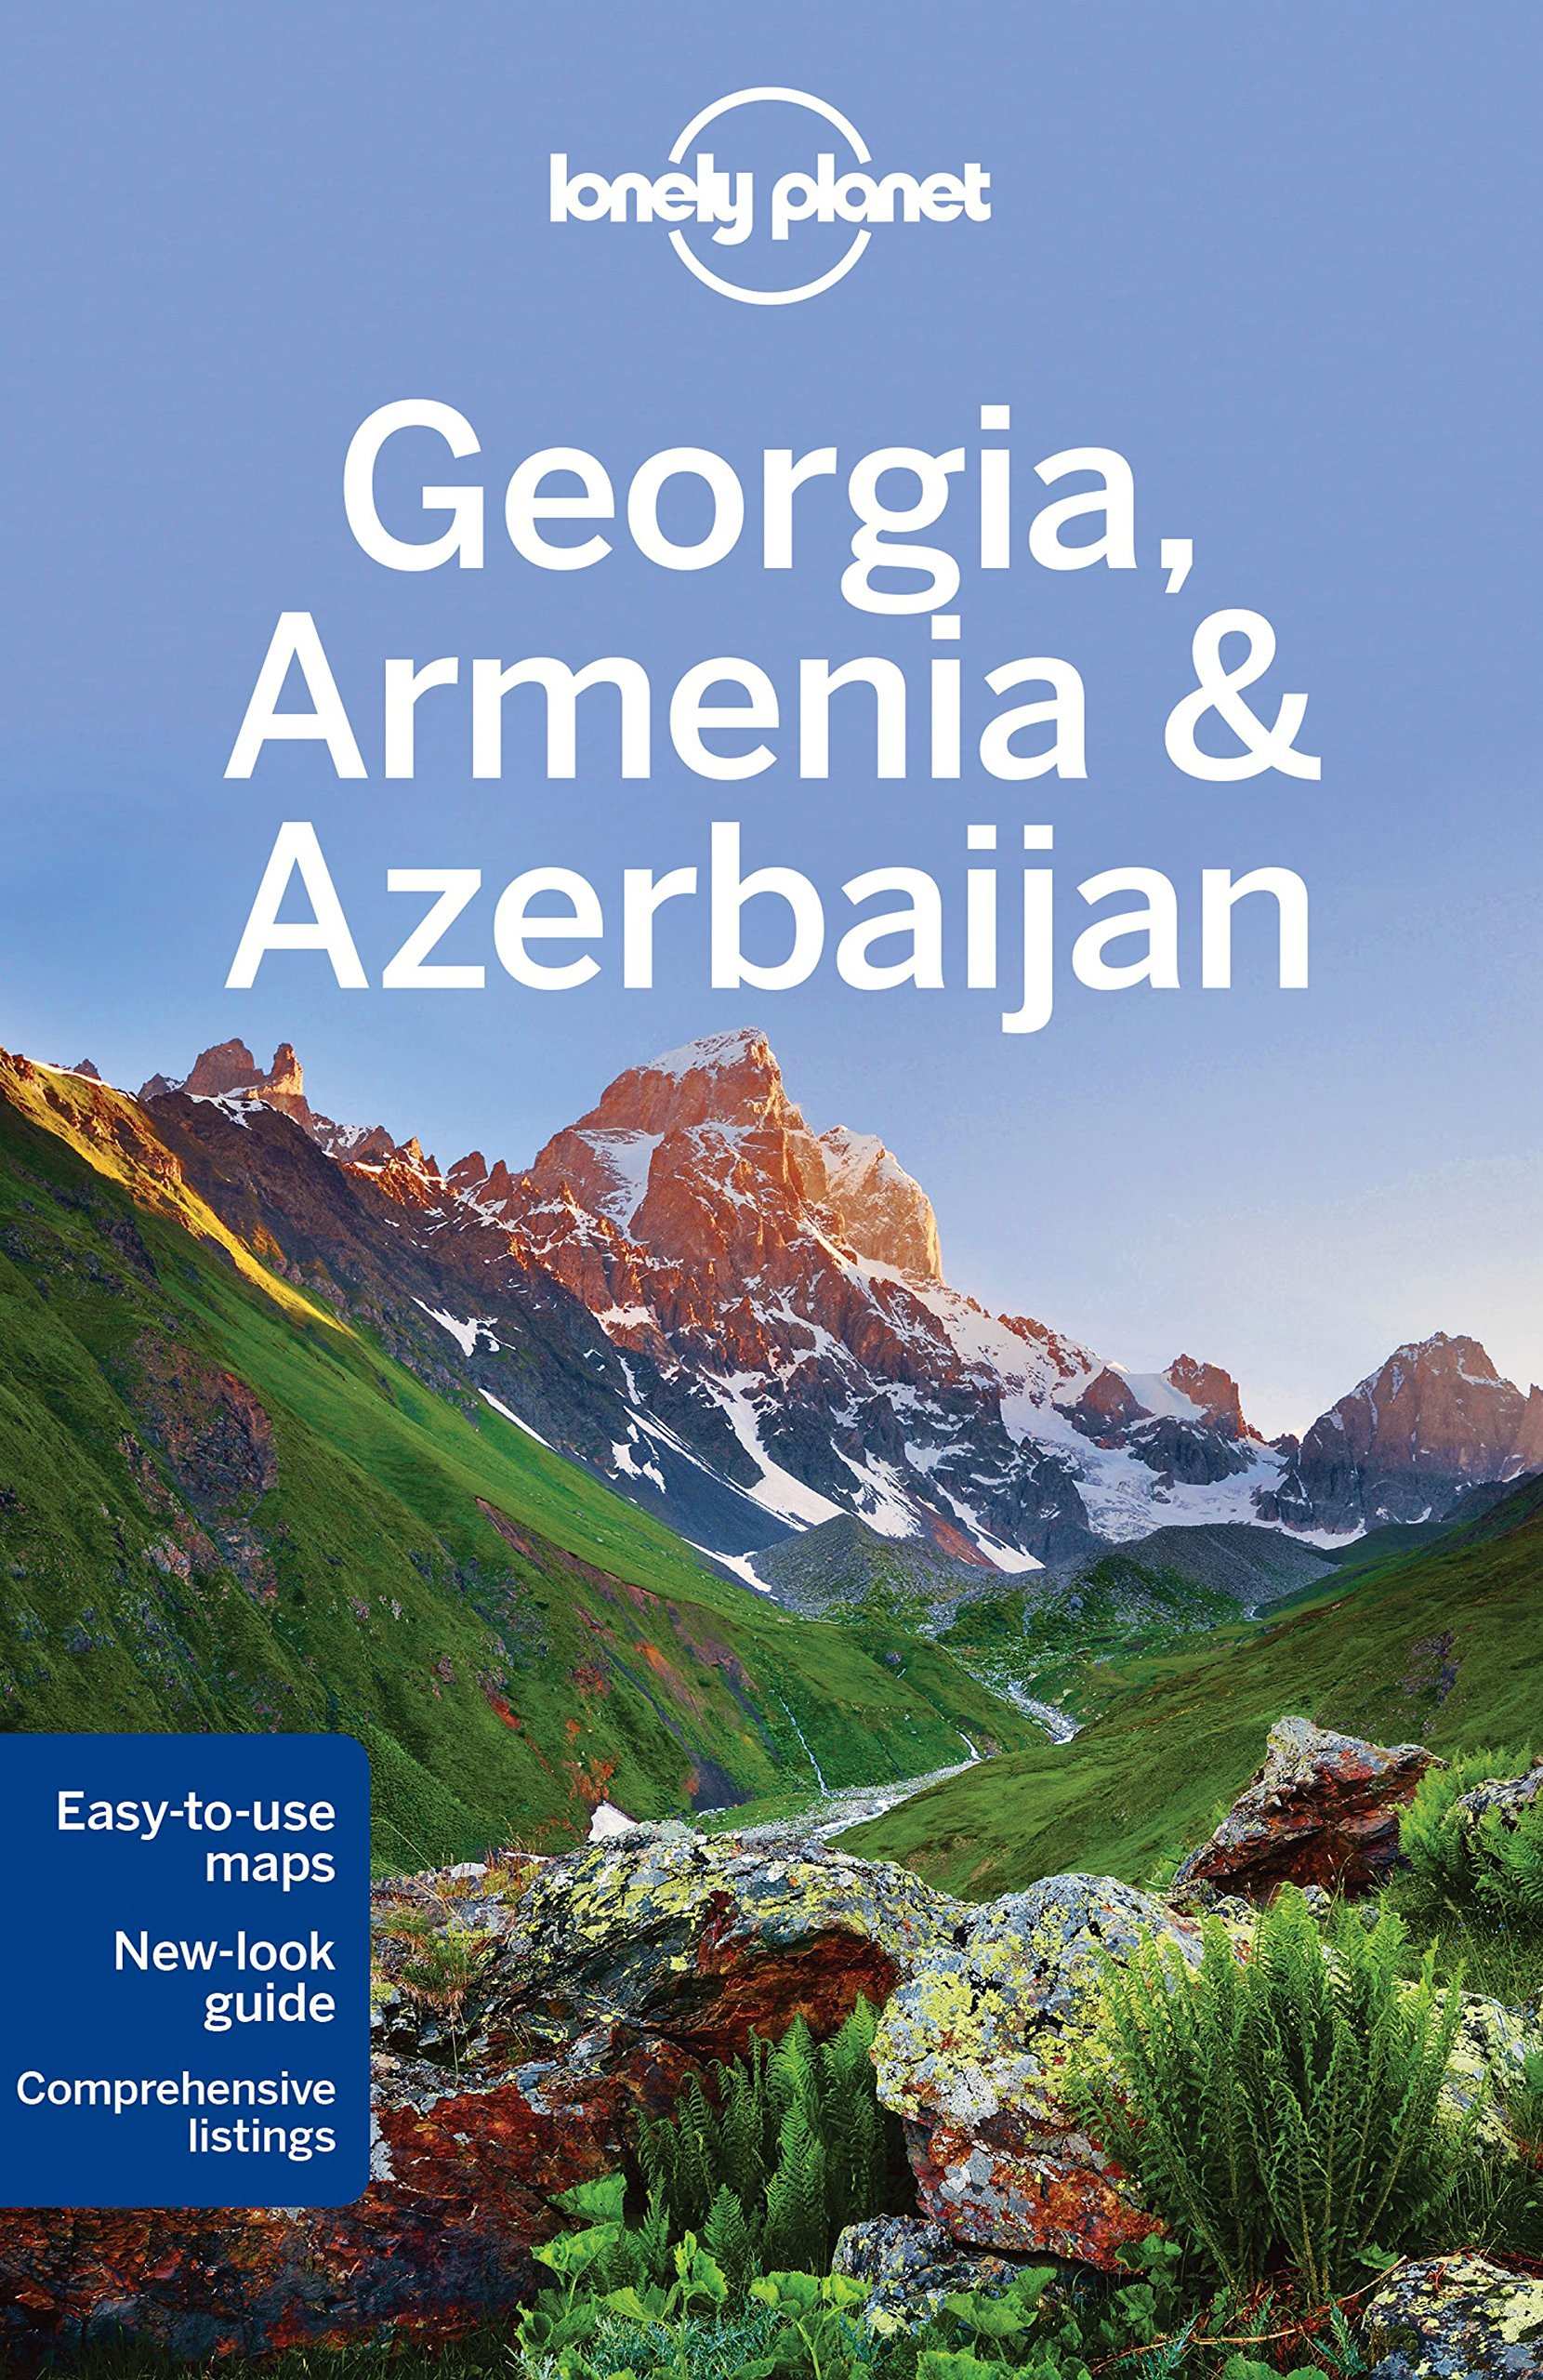 Lonely Planet Georgia Armenia Azerbaijan Travel Guide Lonely - Georgia map lonely planet